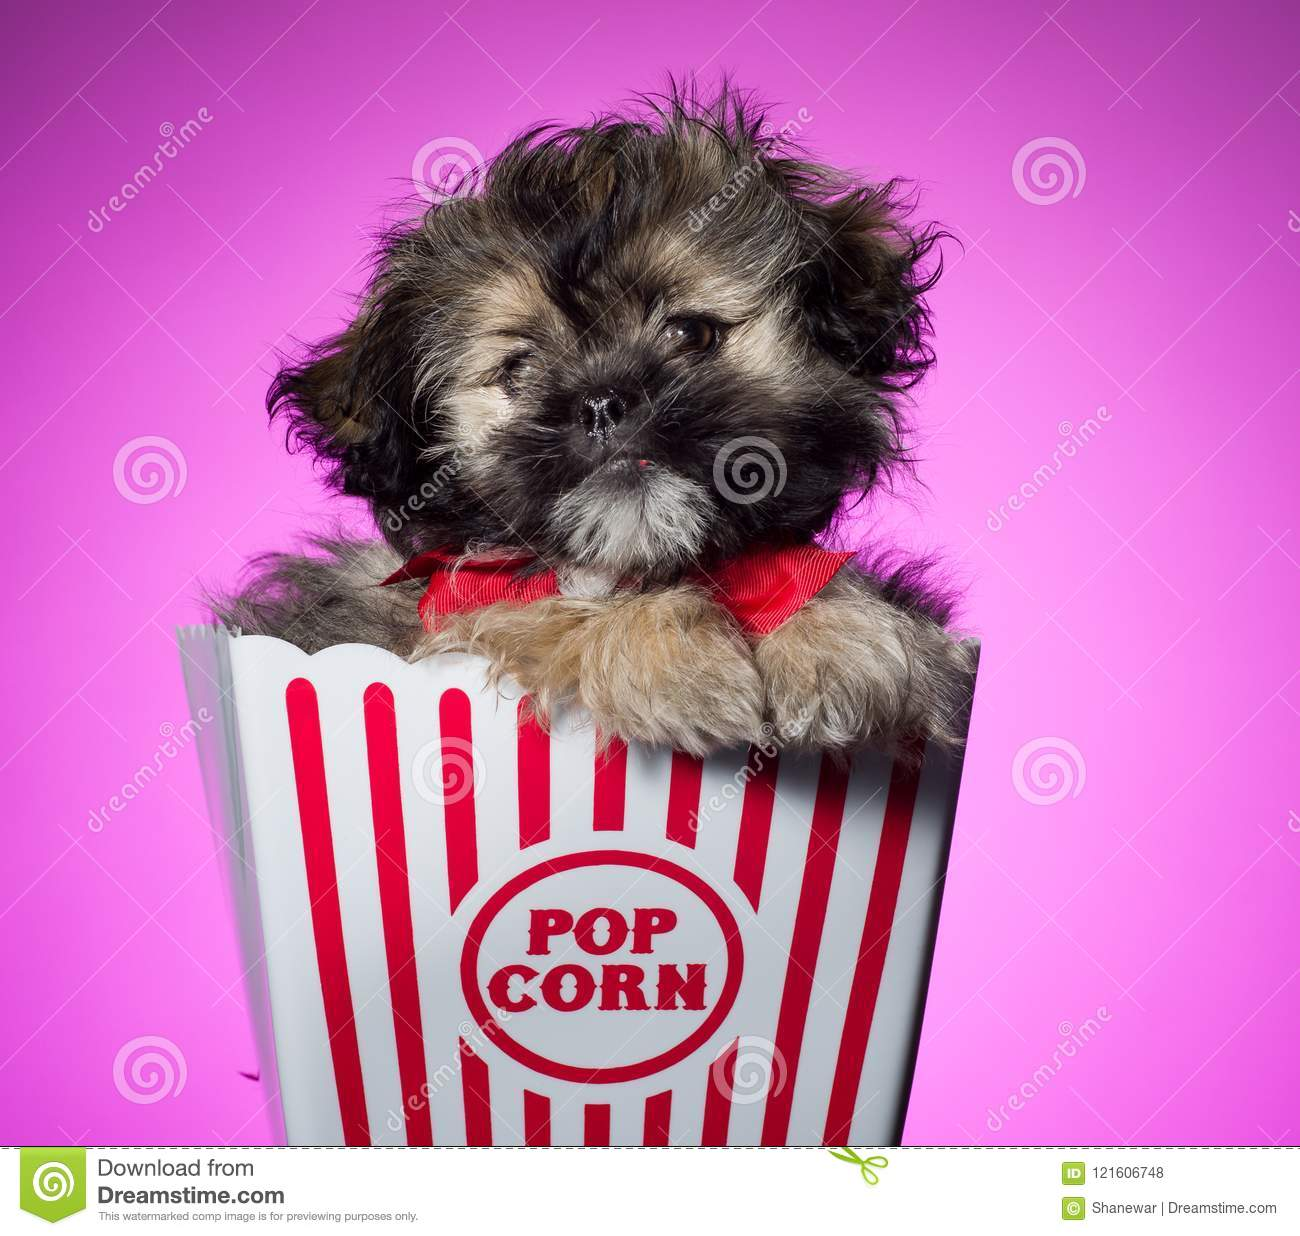 Shih Tzu Puppy In A Basket On Colored Background Stock Photo Image Of Silly Young 121606748